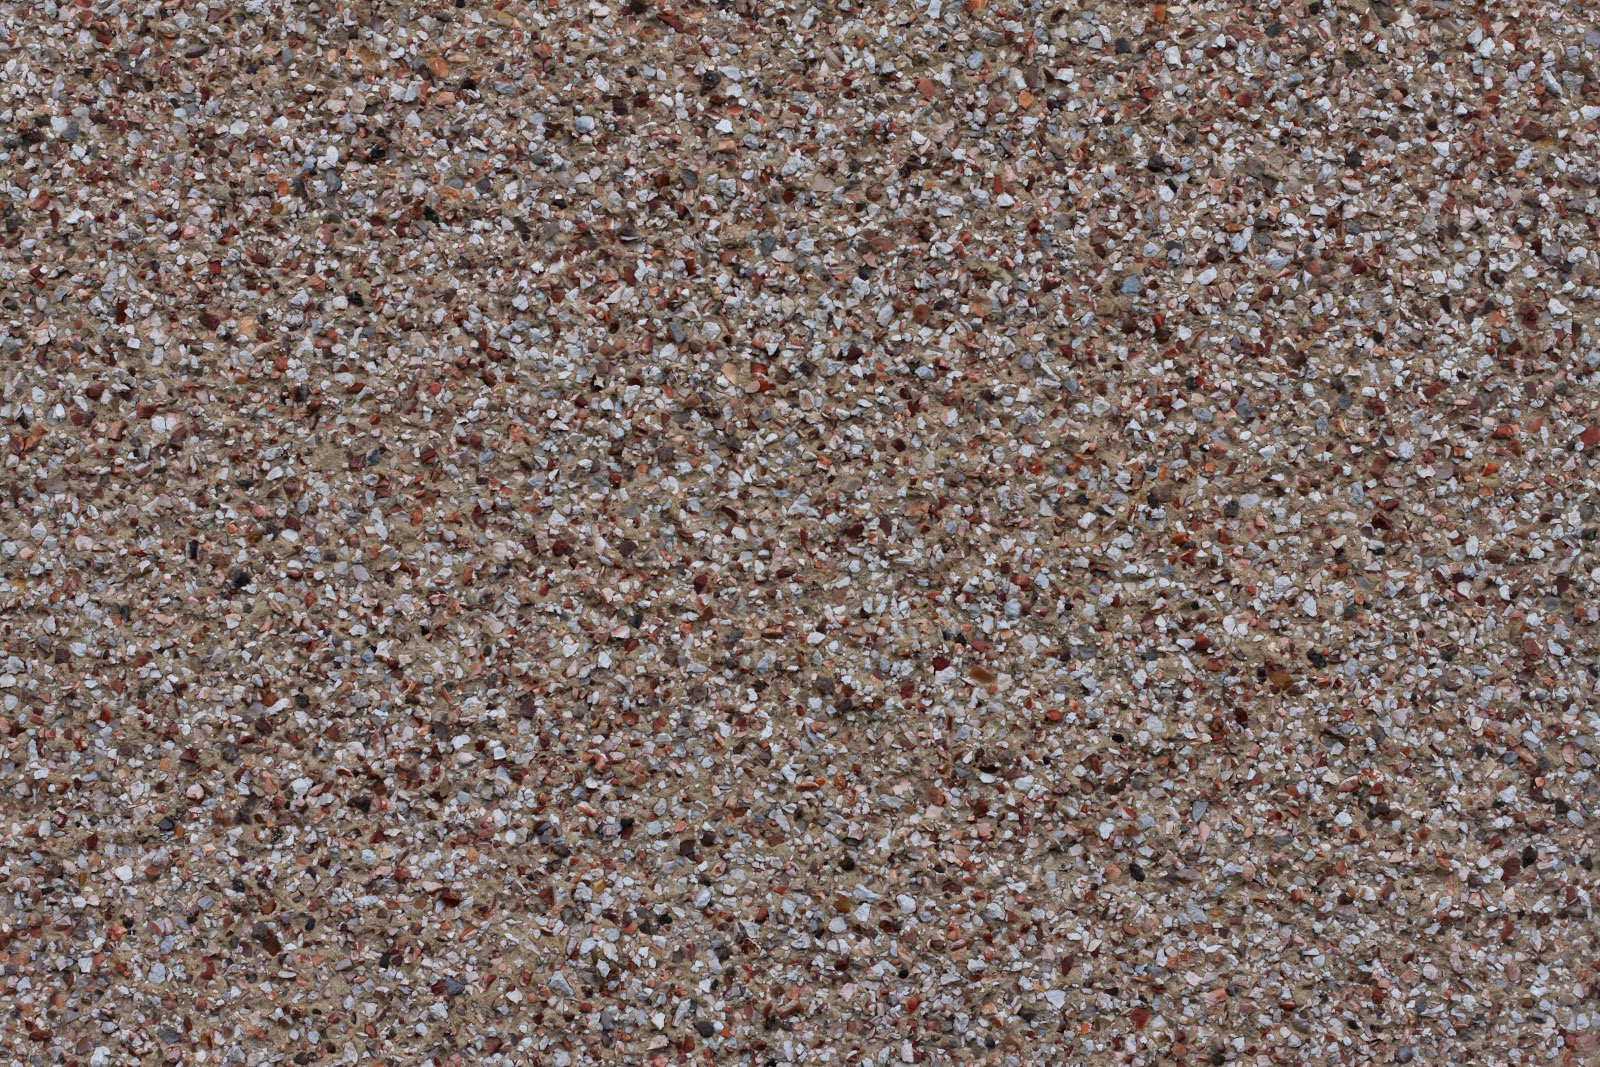 Pebblestone wall texture